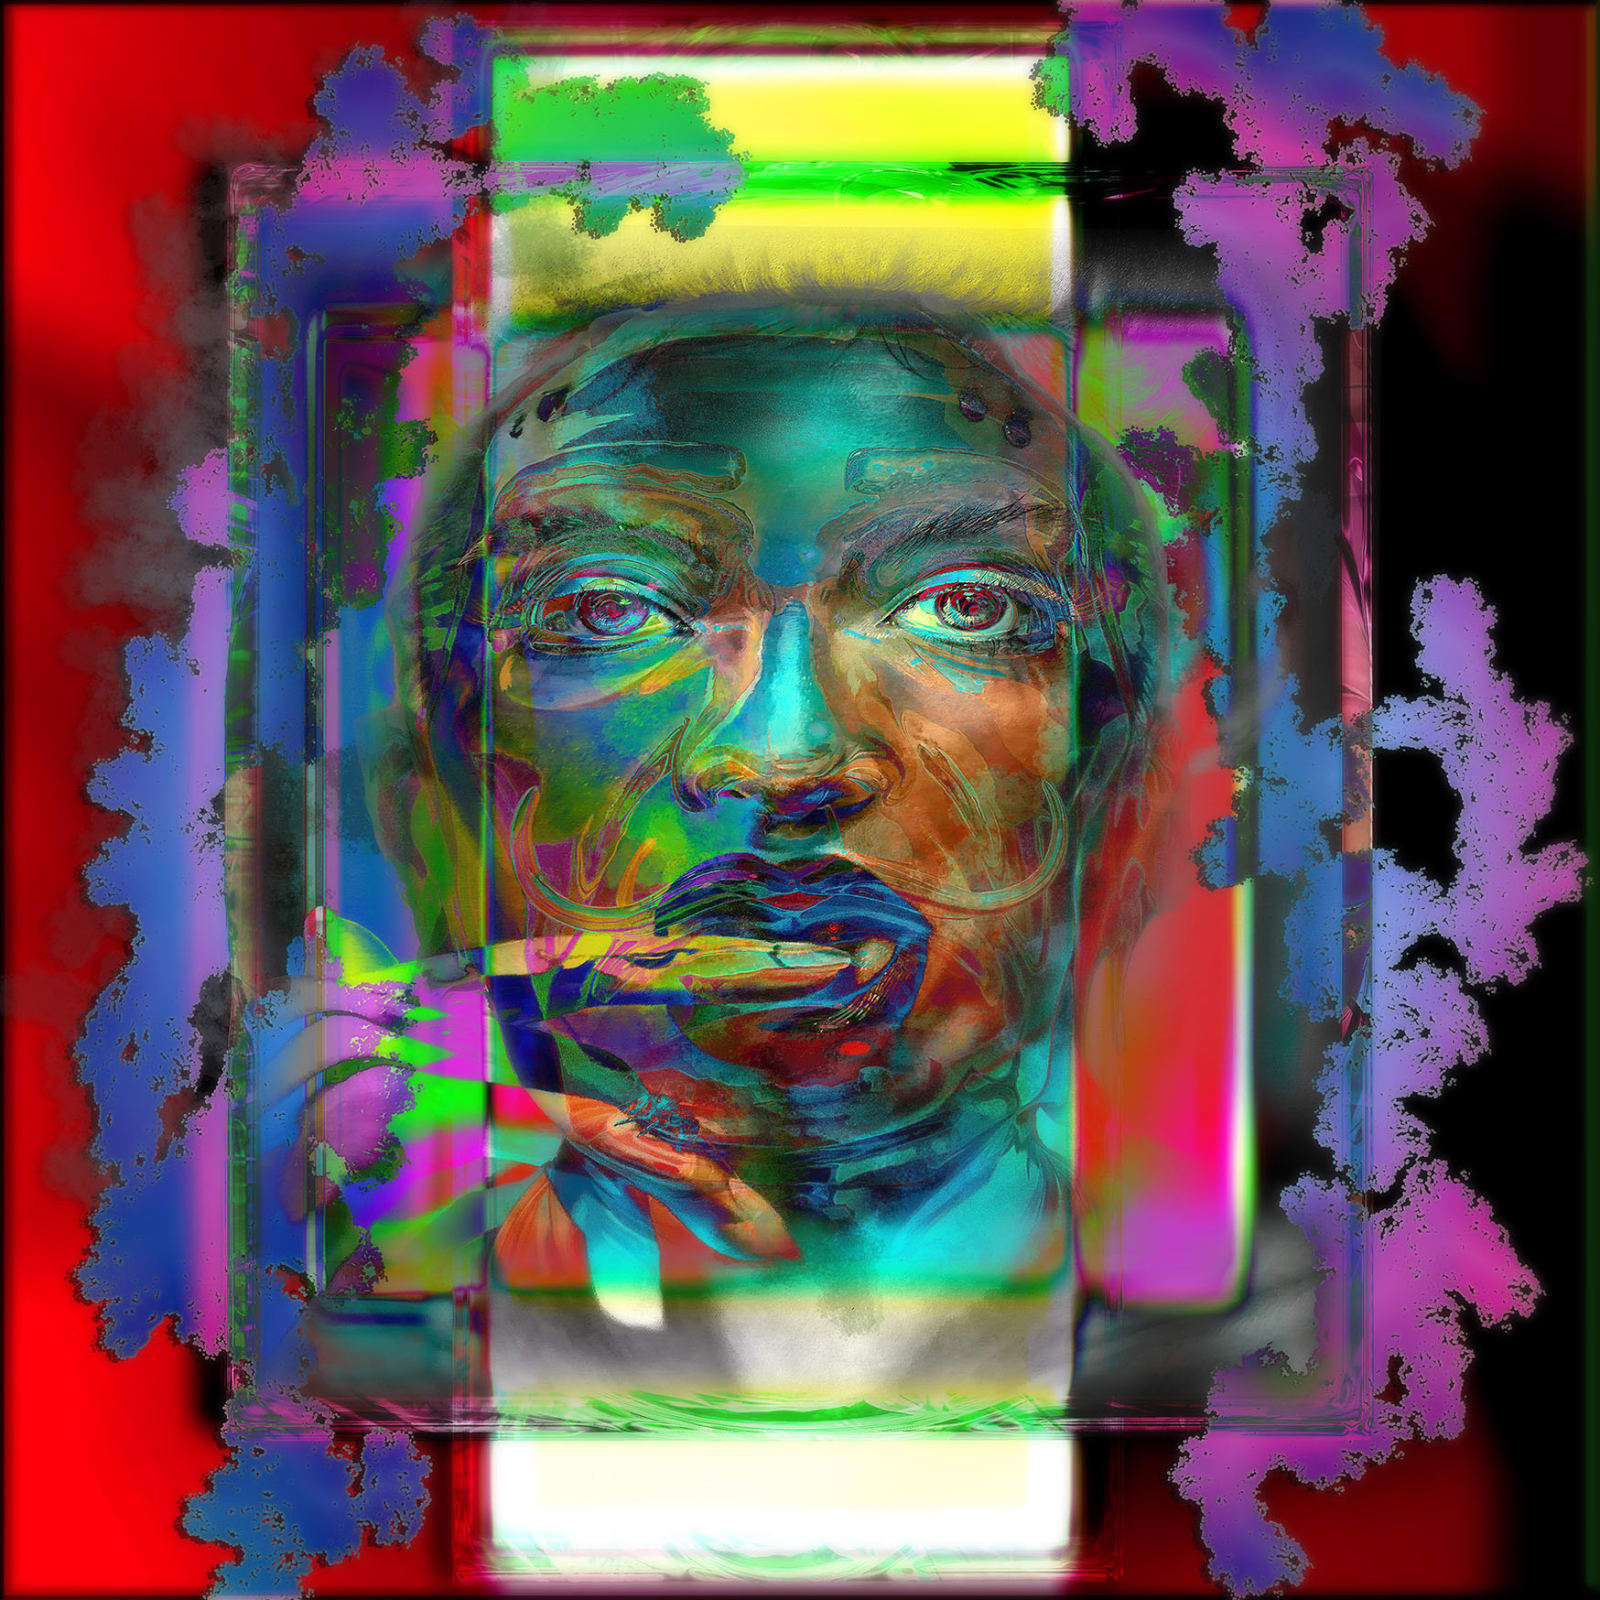 Jens-Christian Wittig, Framed Color Face III, 2019